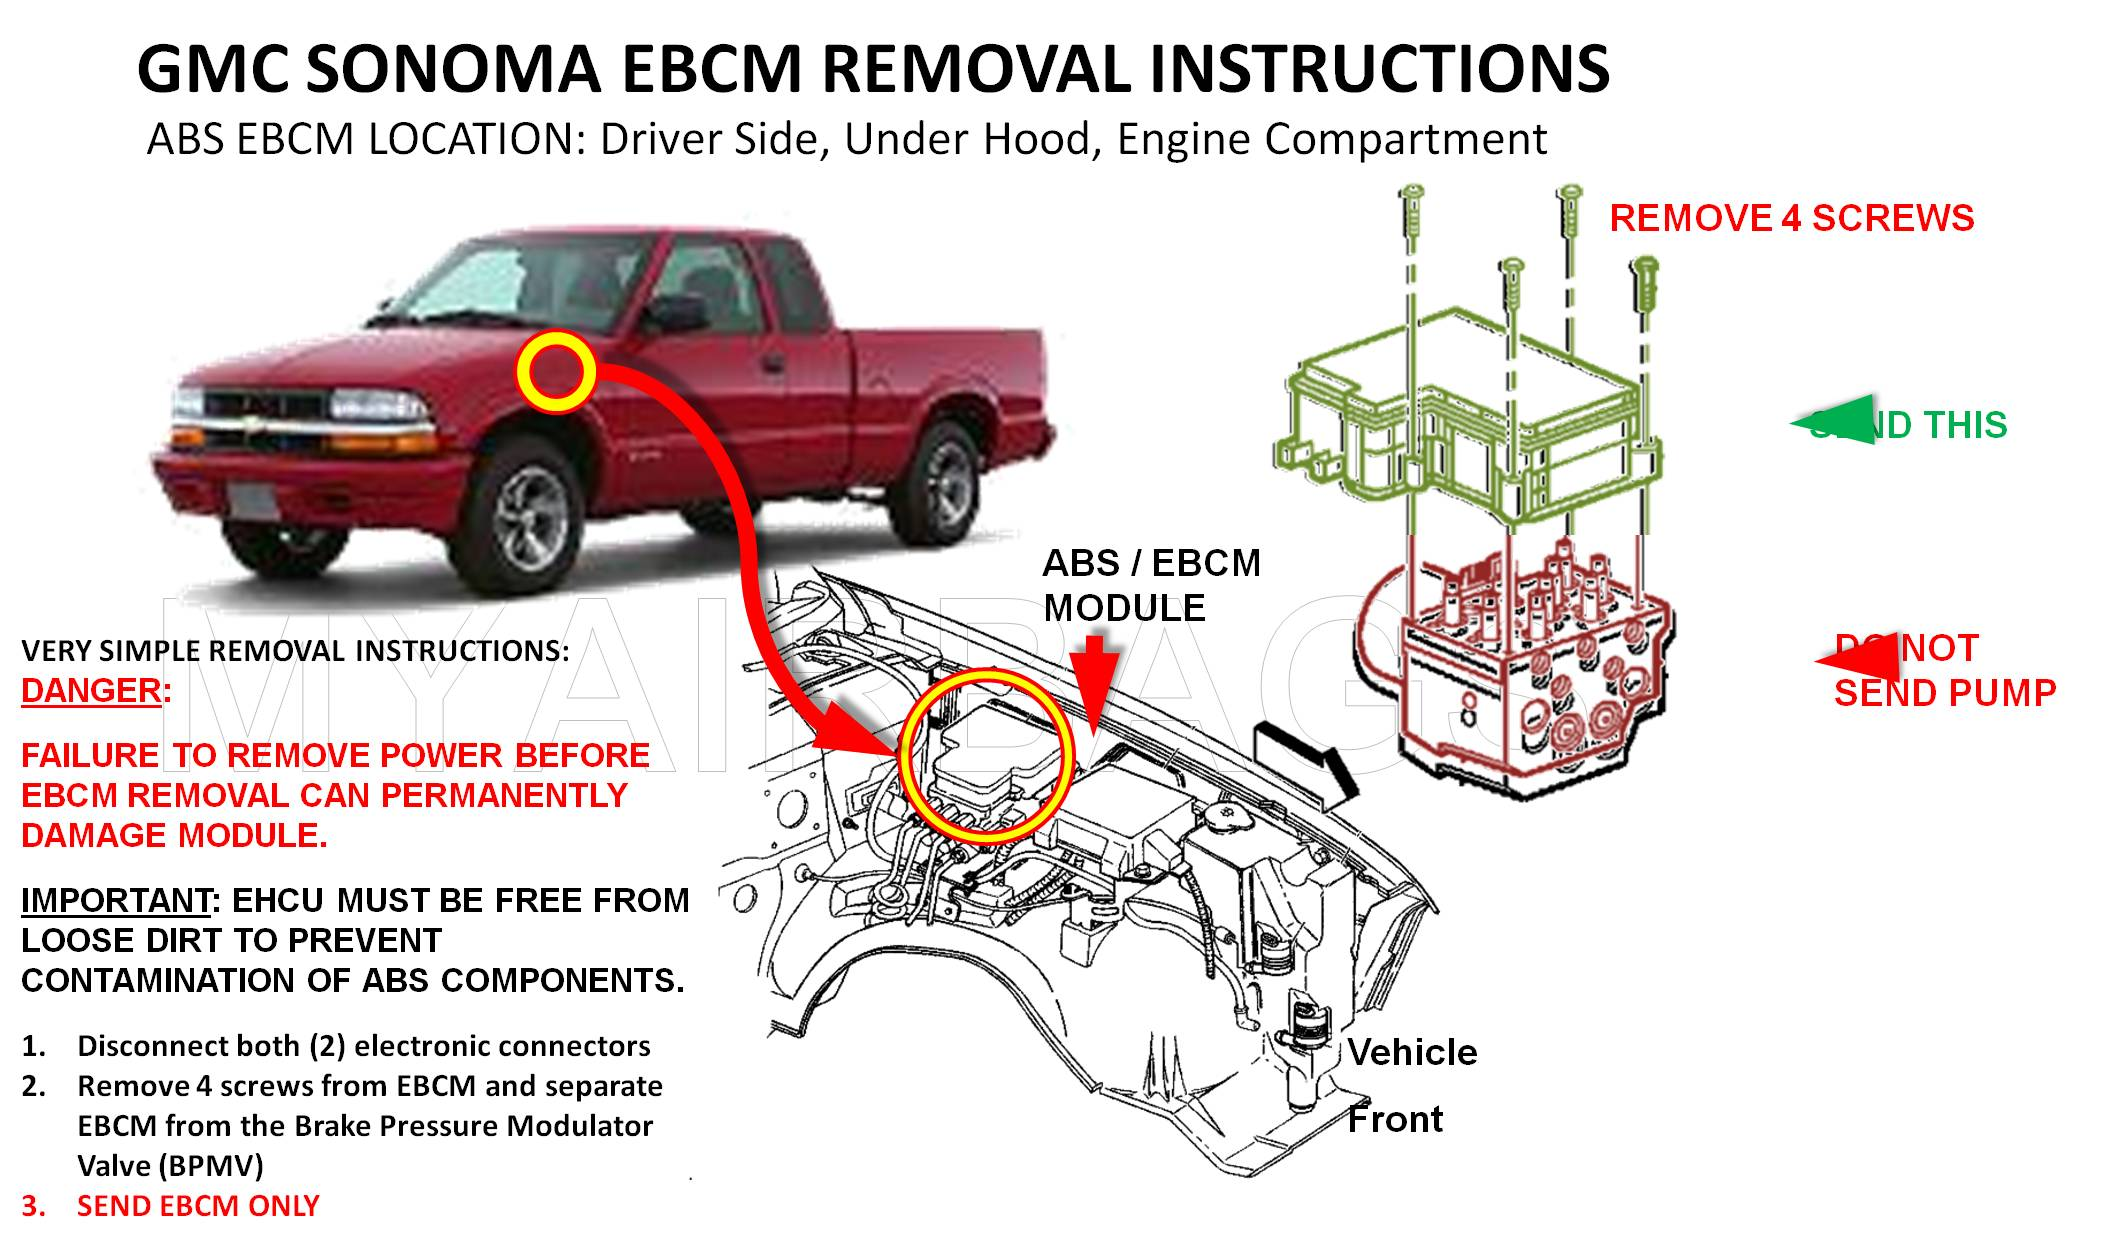 2002 gmc sonoma stereo wiring diagram mitosis and meiosis stages 2003 suburban oxygen sensor location chevy o2